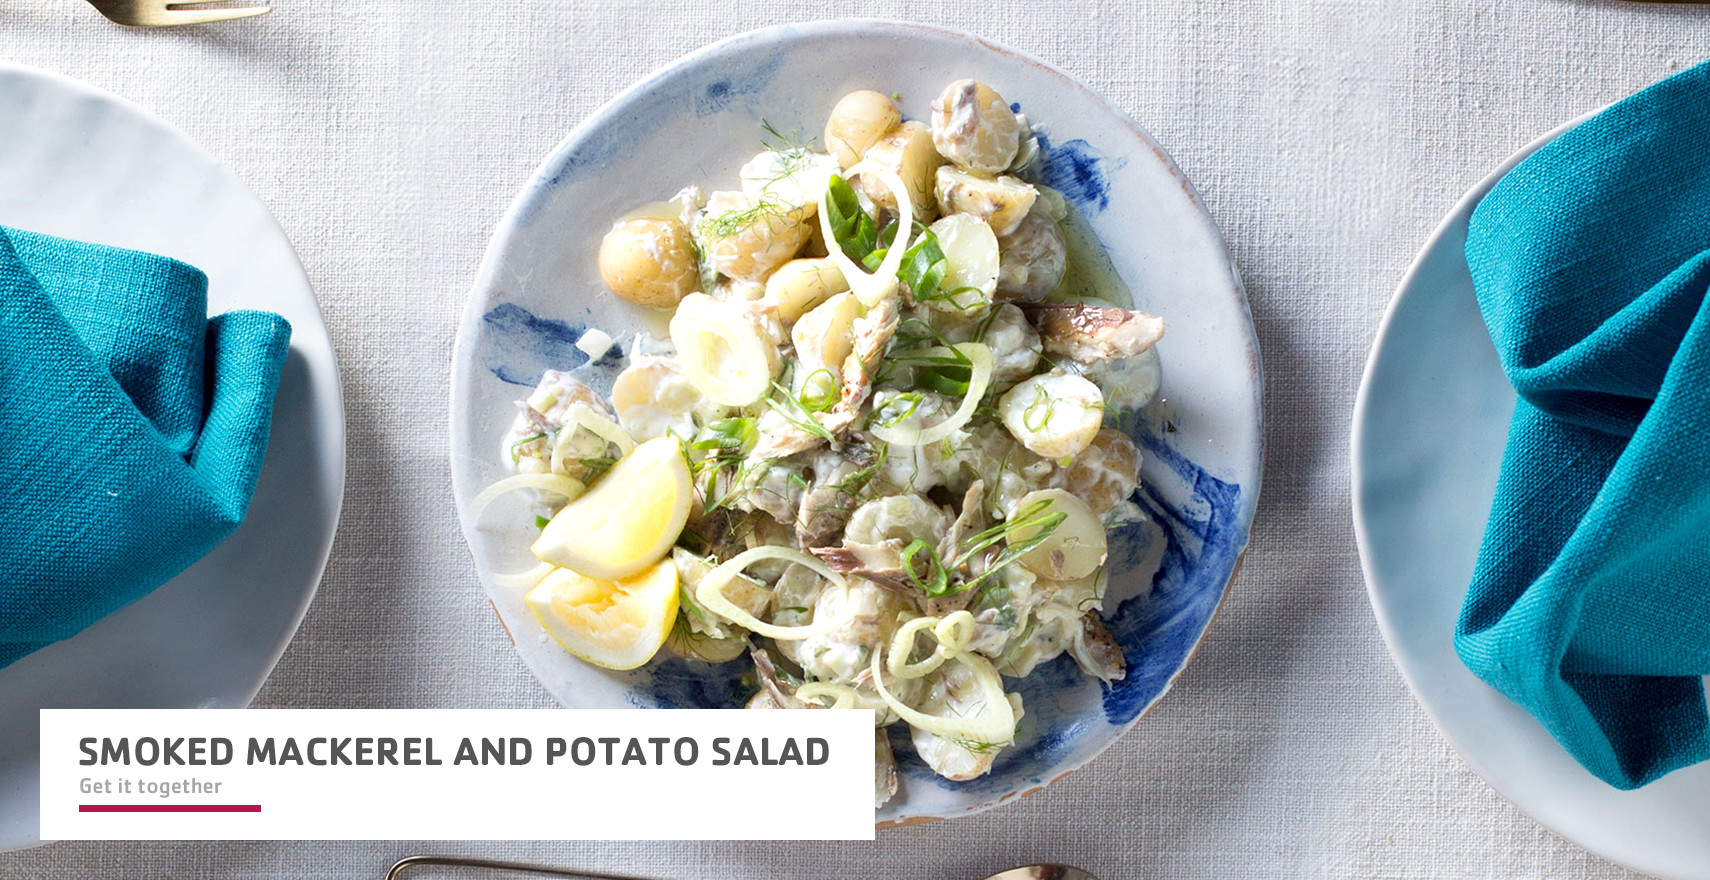 Smoked mackerel and potato salad header image.jpg